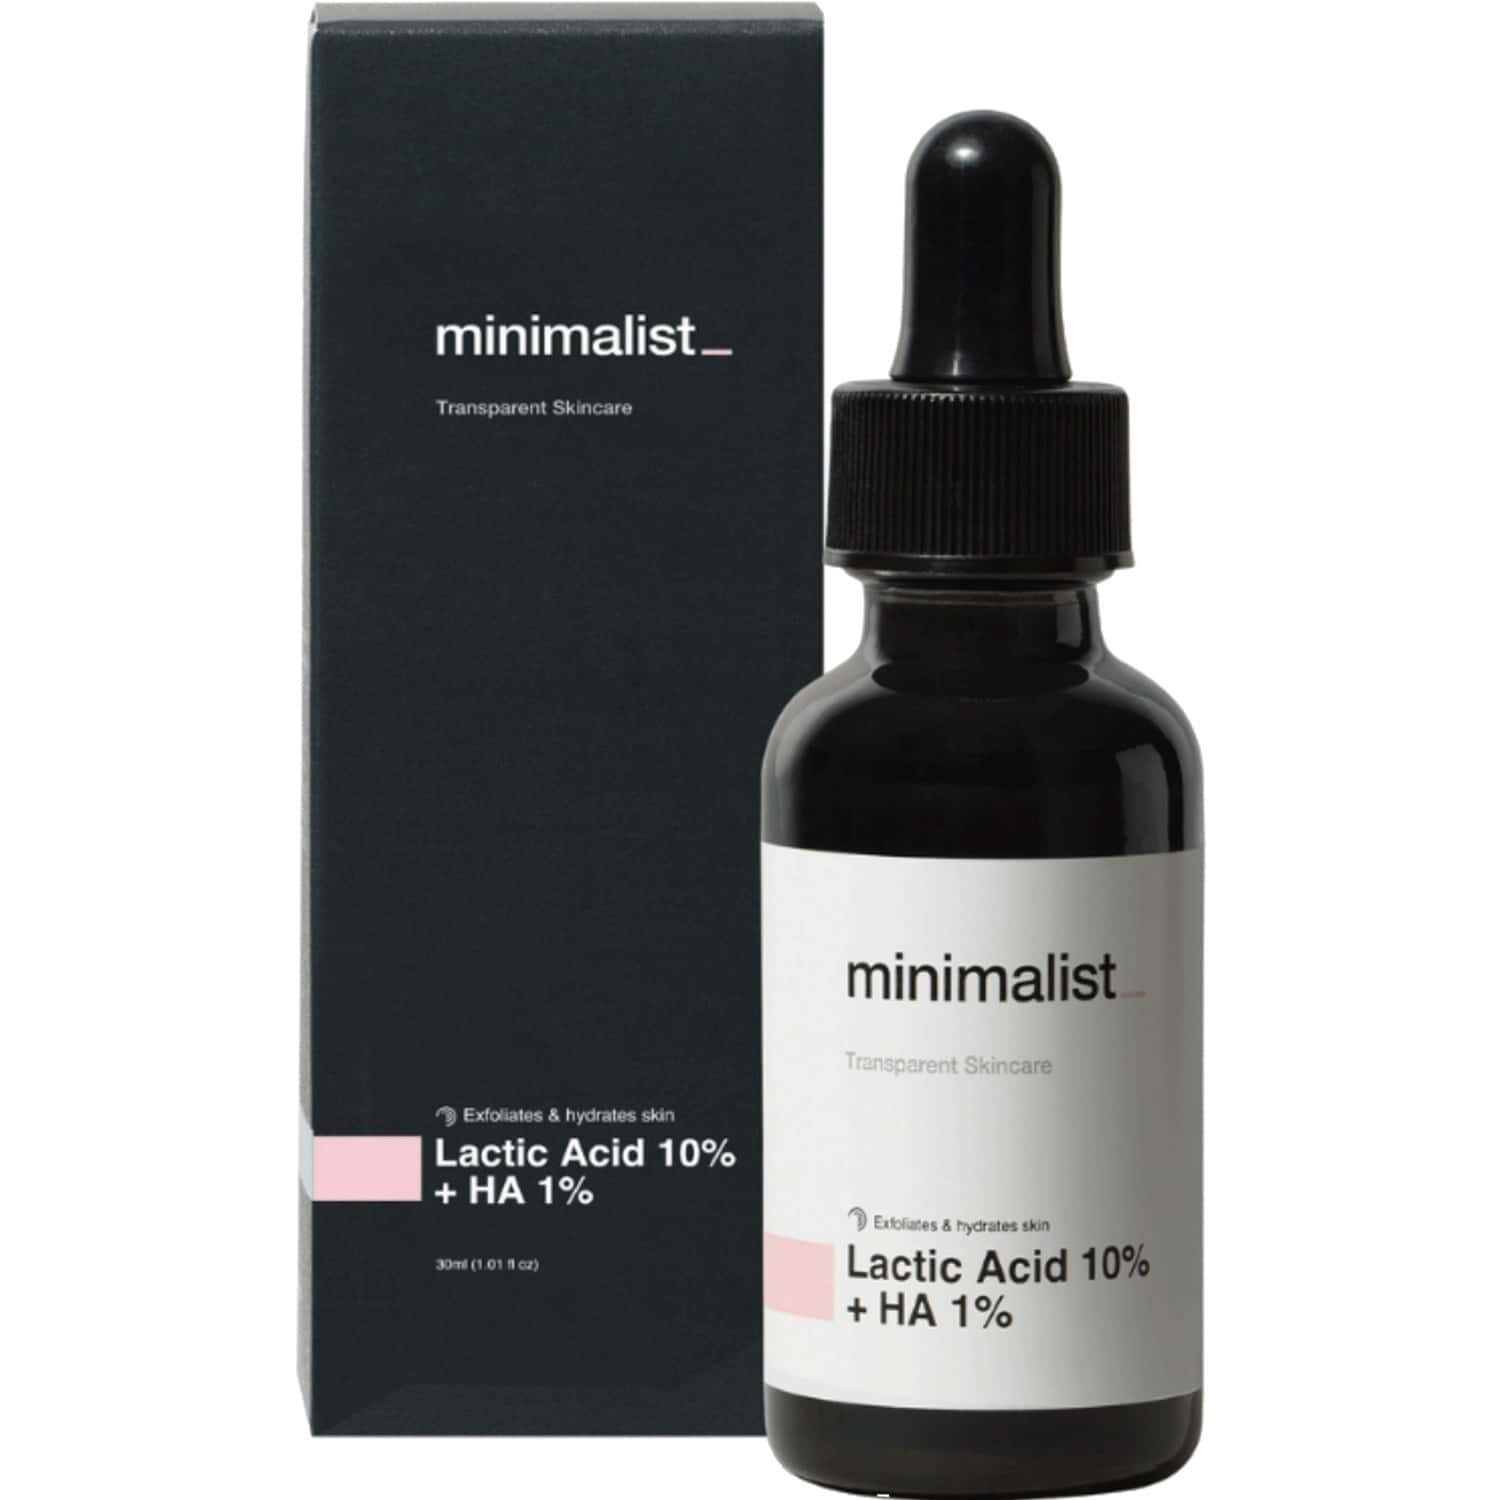 Minimalist Lactic Acid 10% Exfoliant For Acne Scars, Even Tone & Texture With Hyaluronic Acid (30ml)